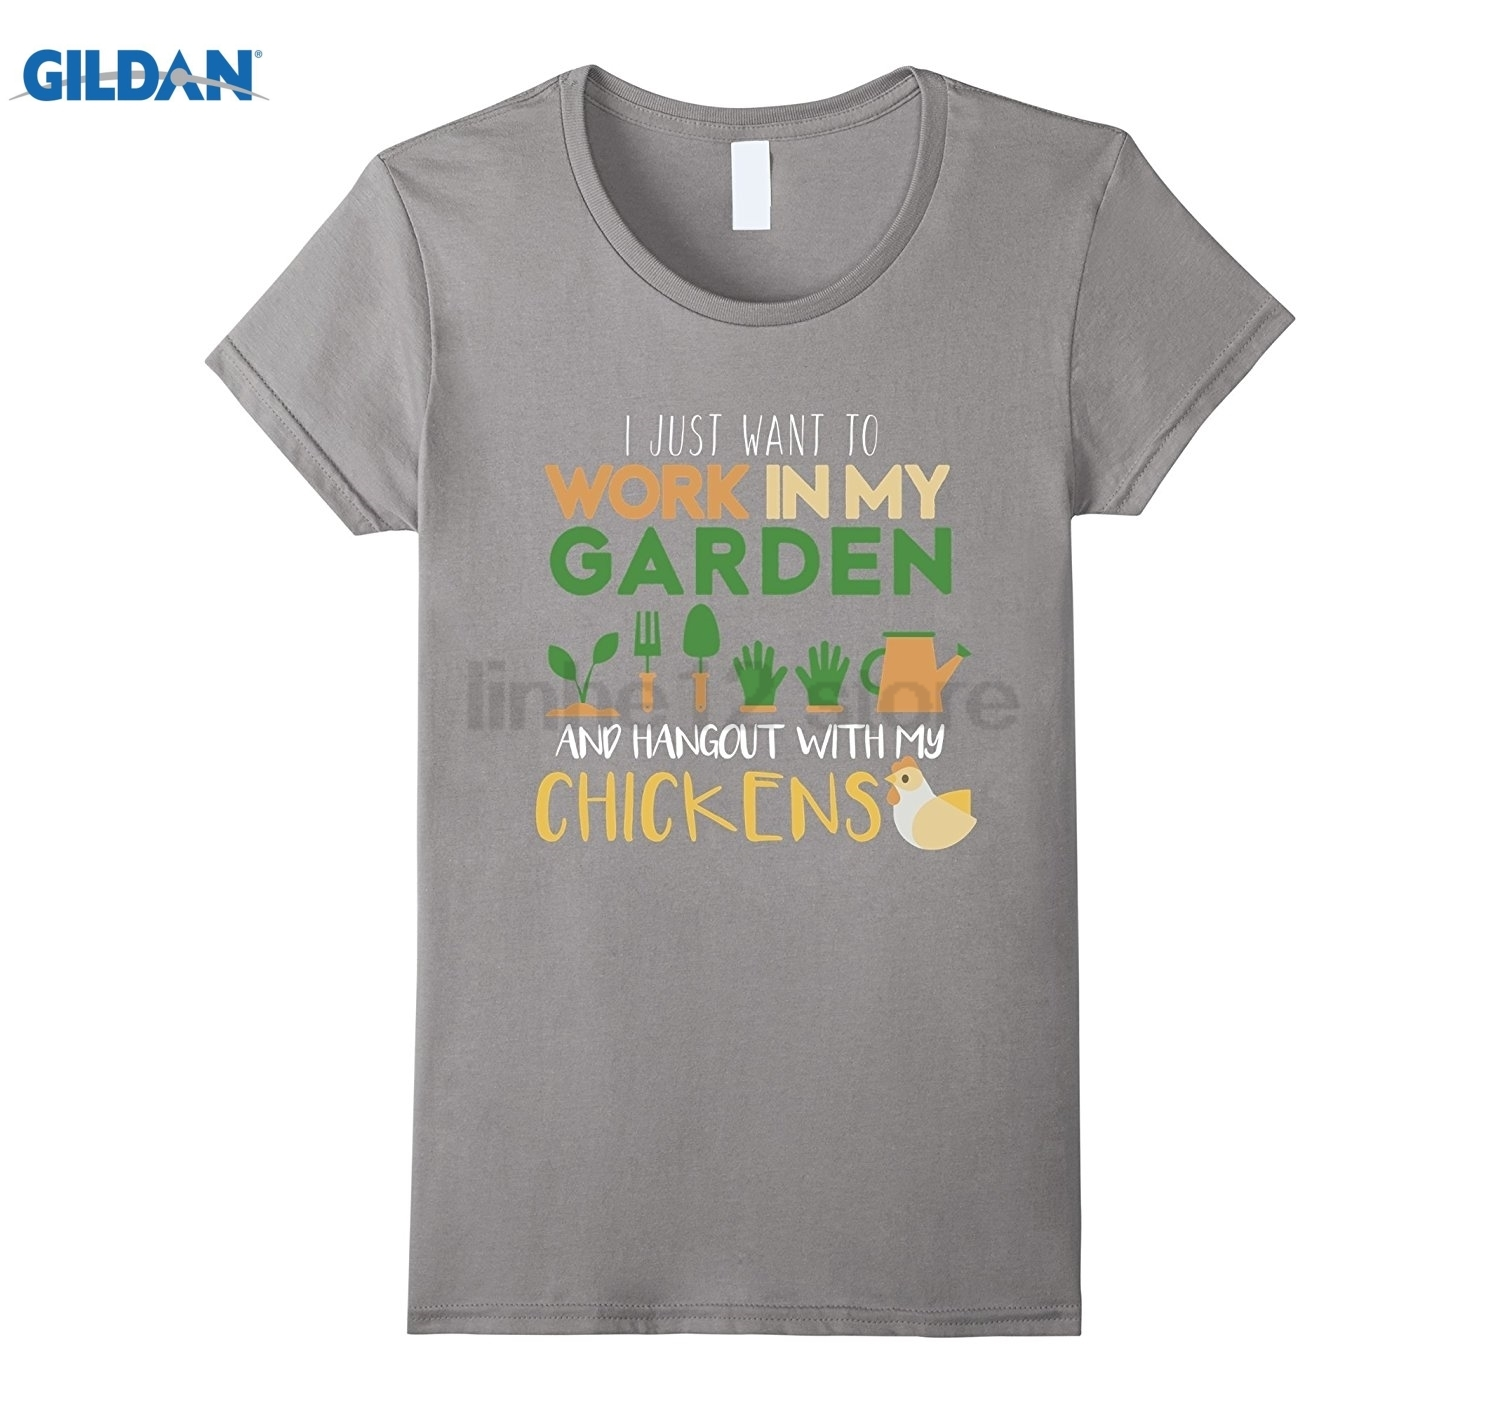 GILDAN Work In My Garden Hangout With My Chickens T-Shirt Gardening Womens T-shirt ...